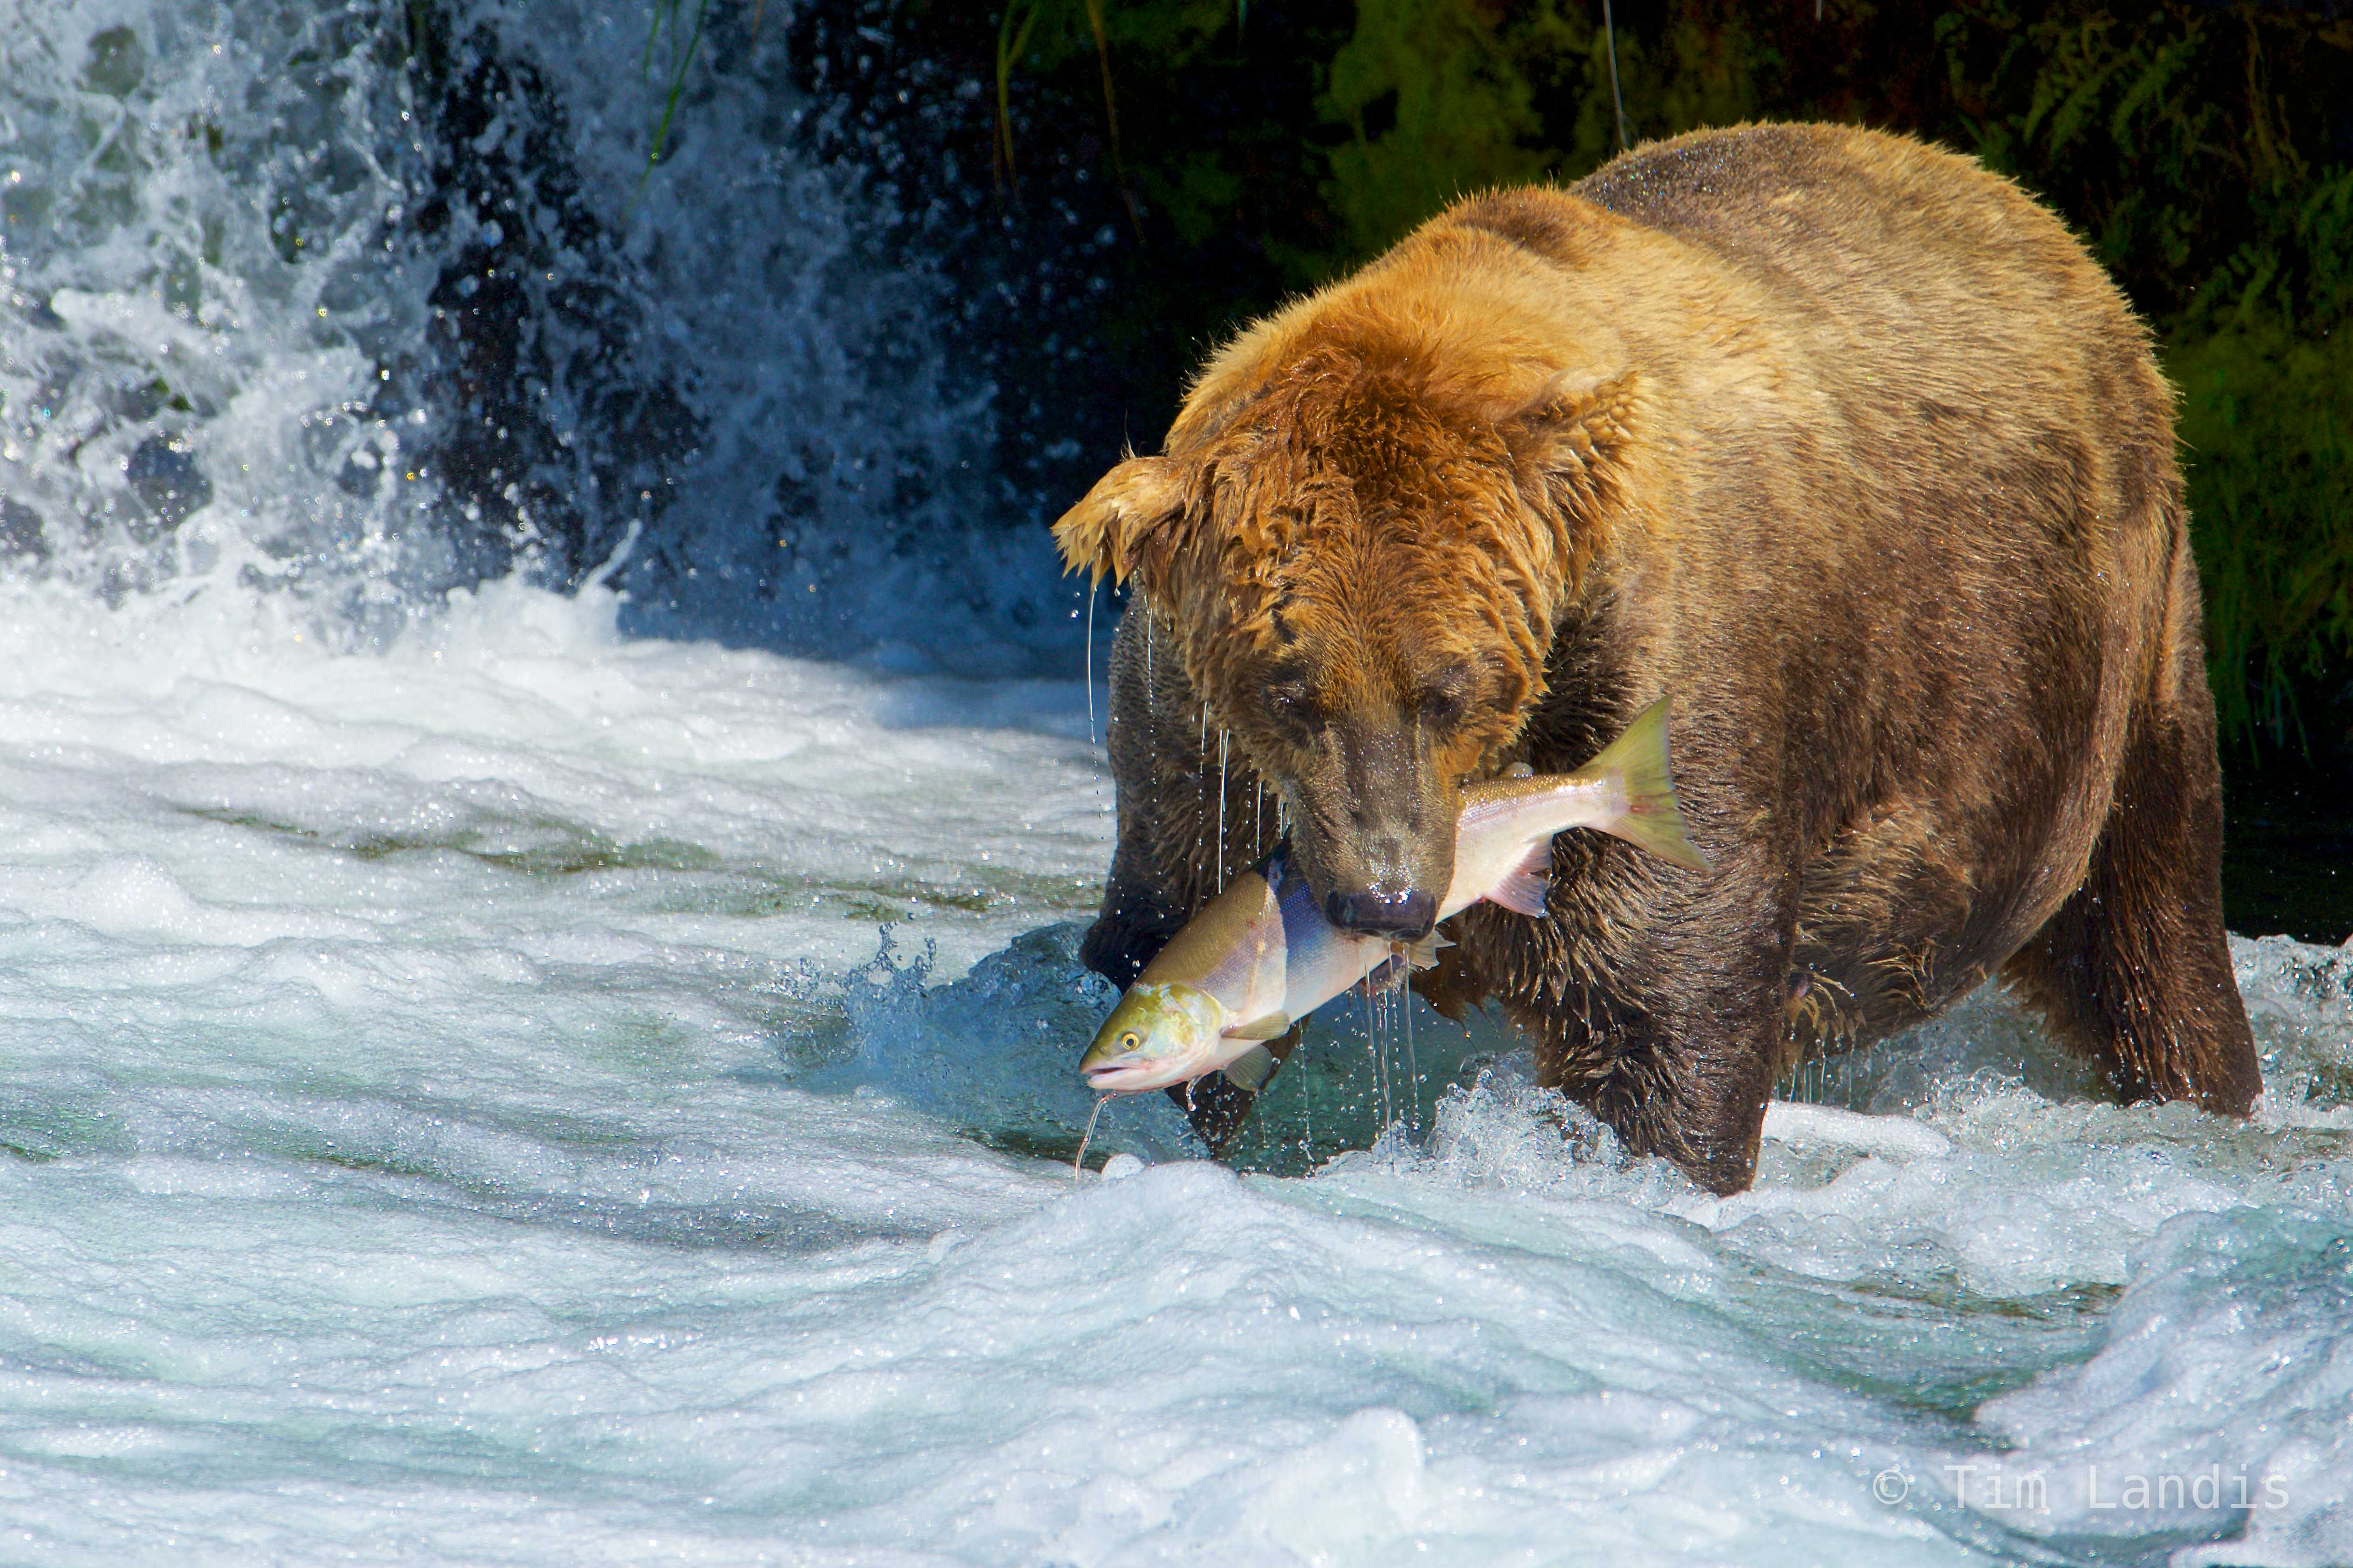 Life is just one big bowl of salmon, this grizzly has to be preggers